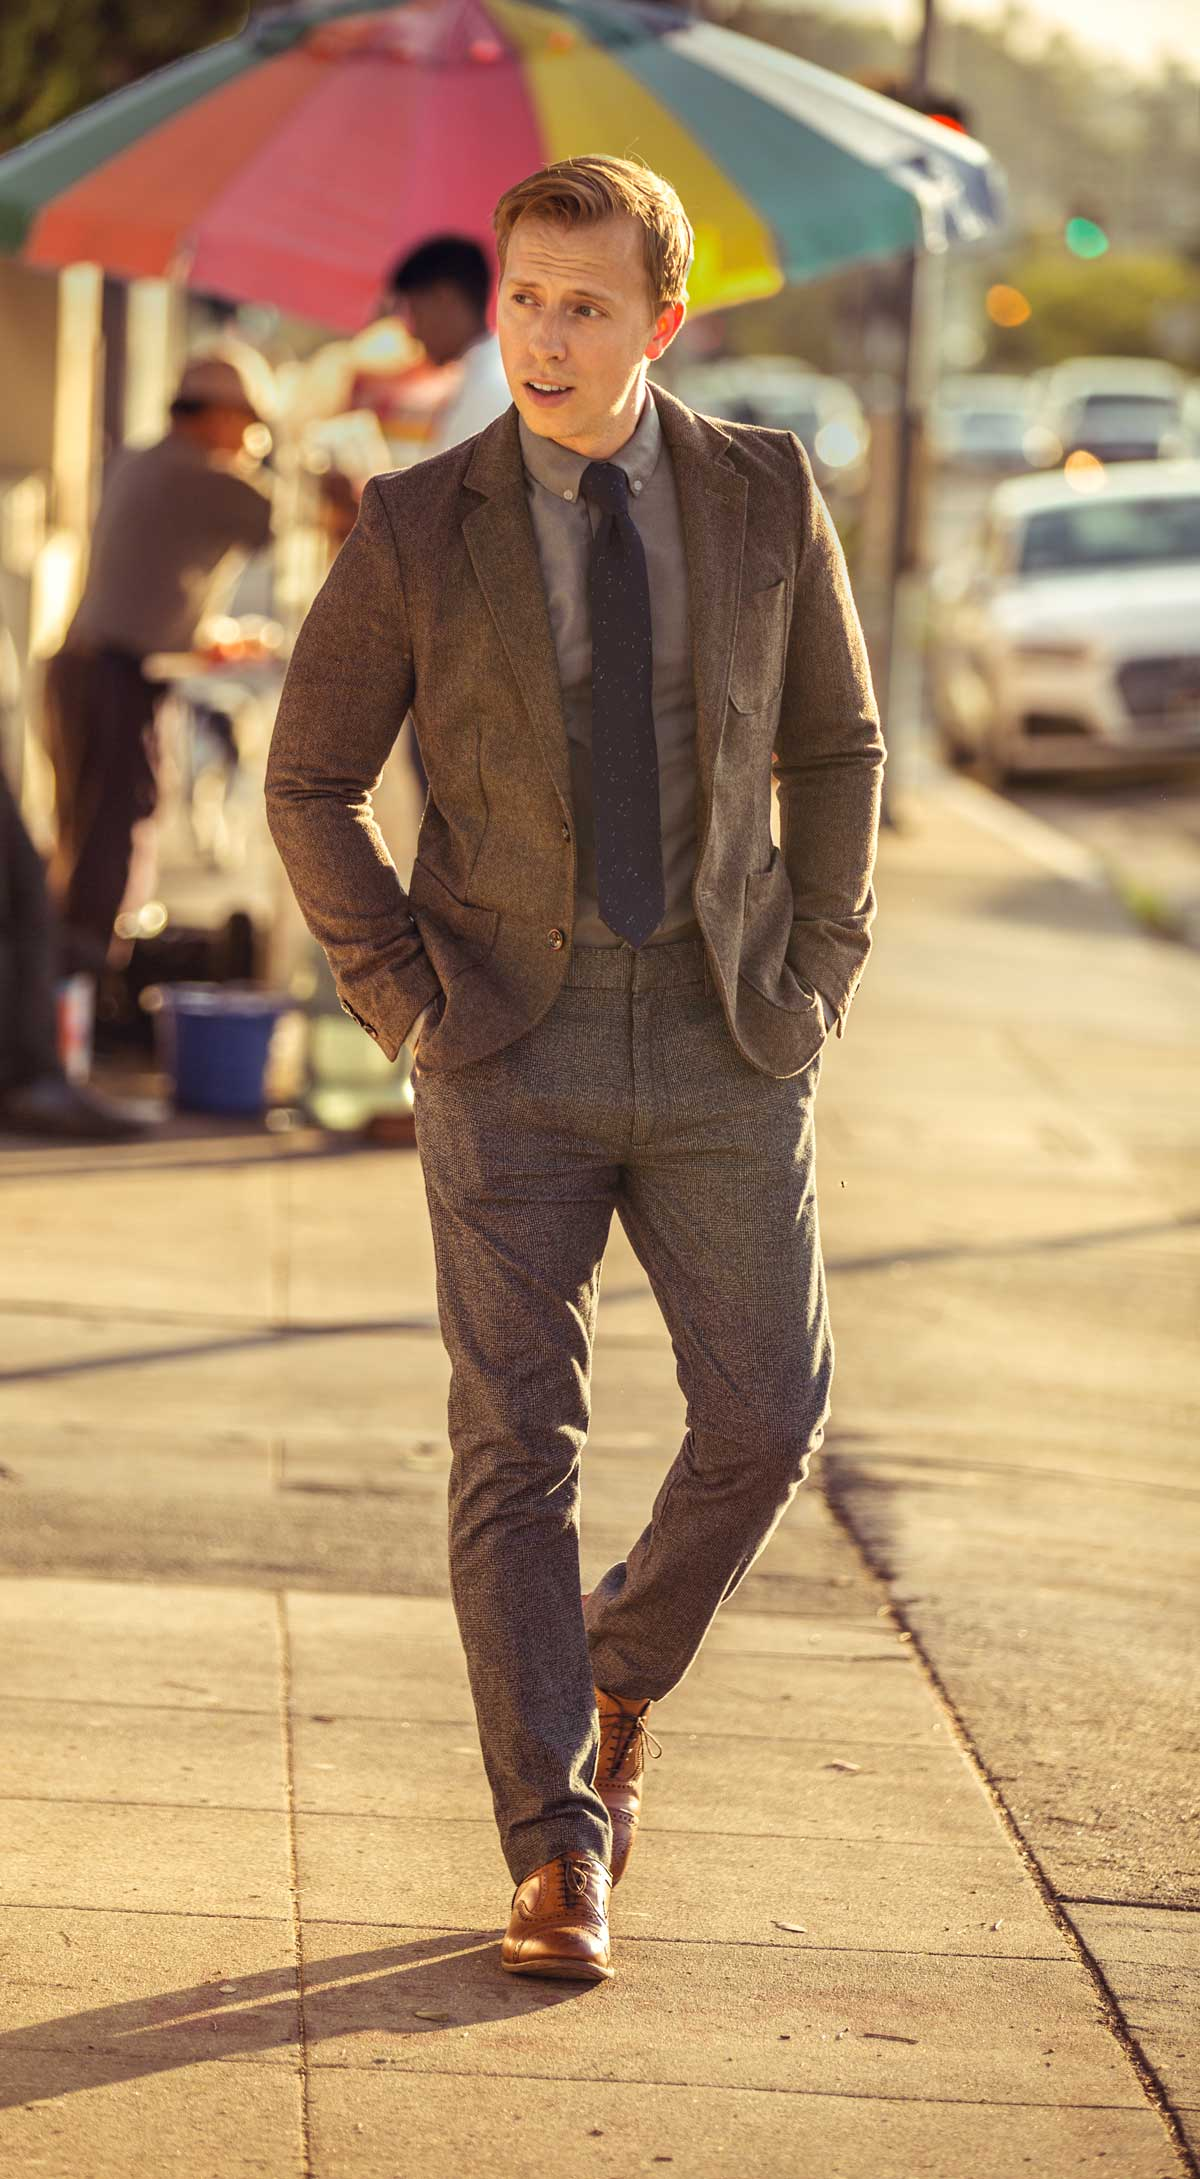 Affordable Men S Fashion The 12 Best Stores For A Guy On